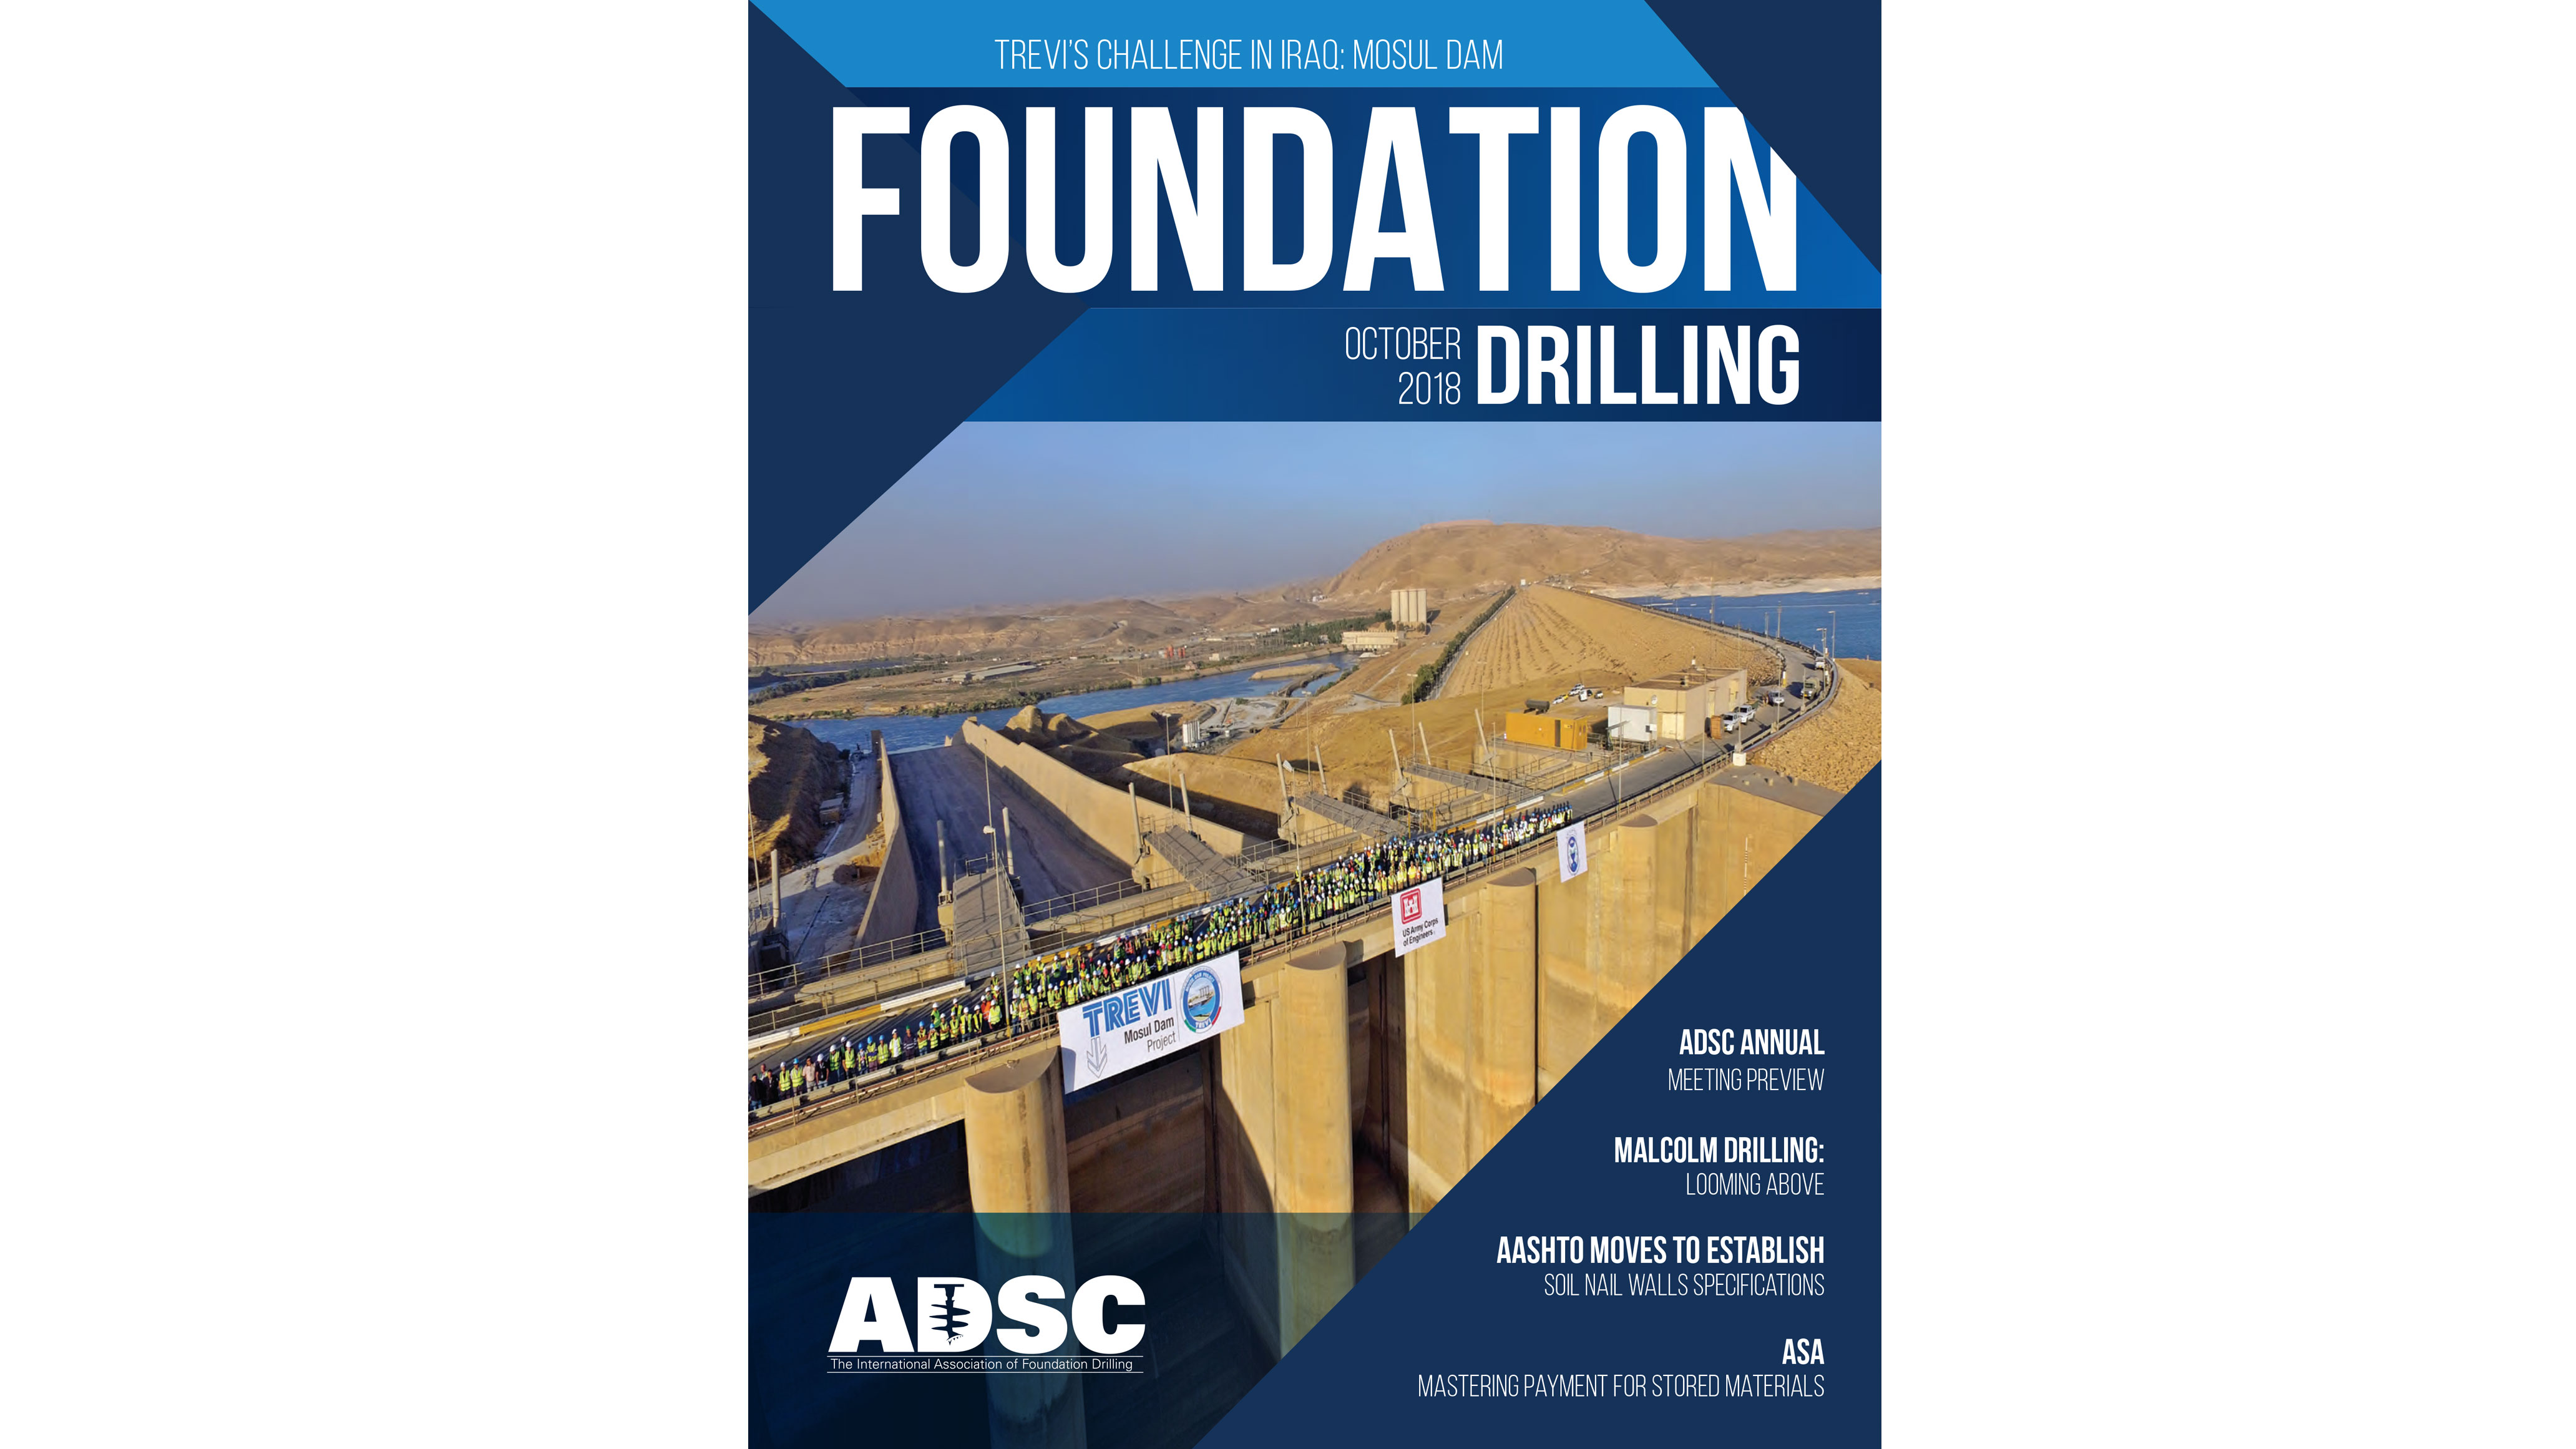 The Mosul jobsite on the cover of ADSC Foundation Drilling Trevi spa